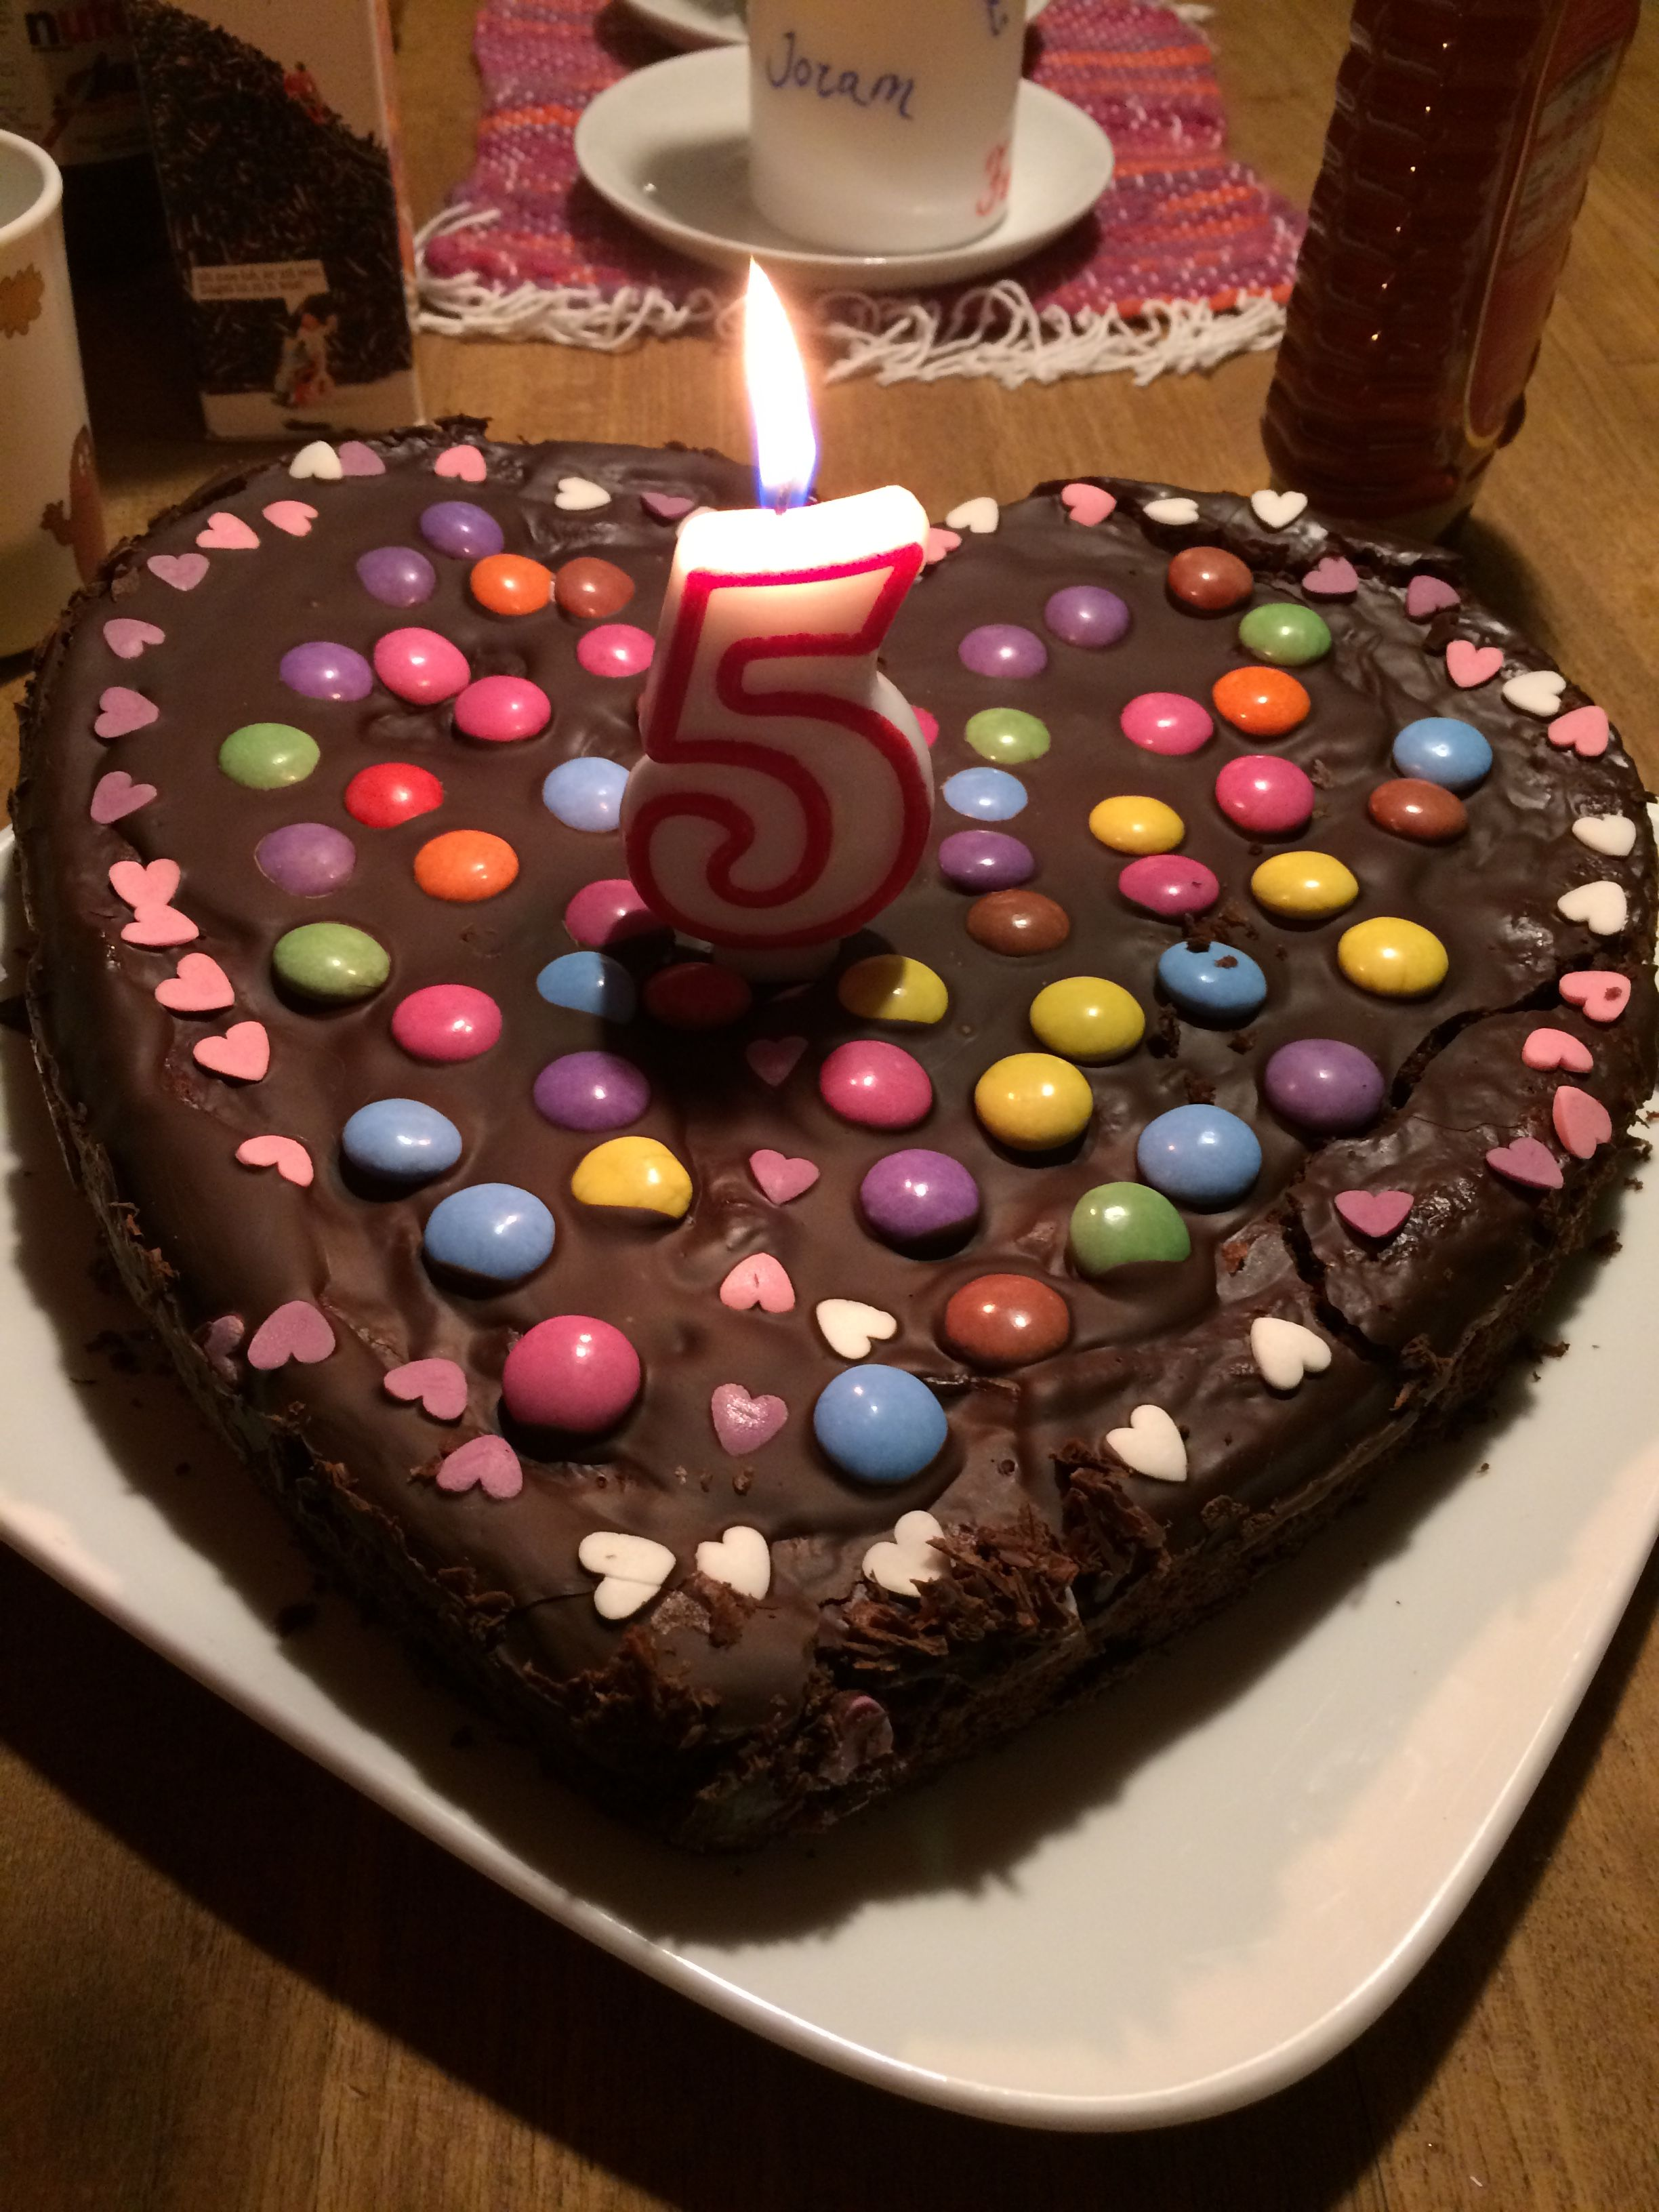 Birthday Cake 5 Year Old Girl Chocolate Cake Heart Covered With